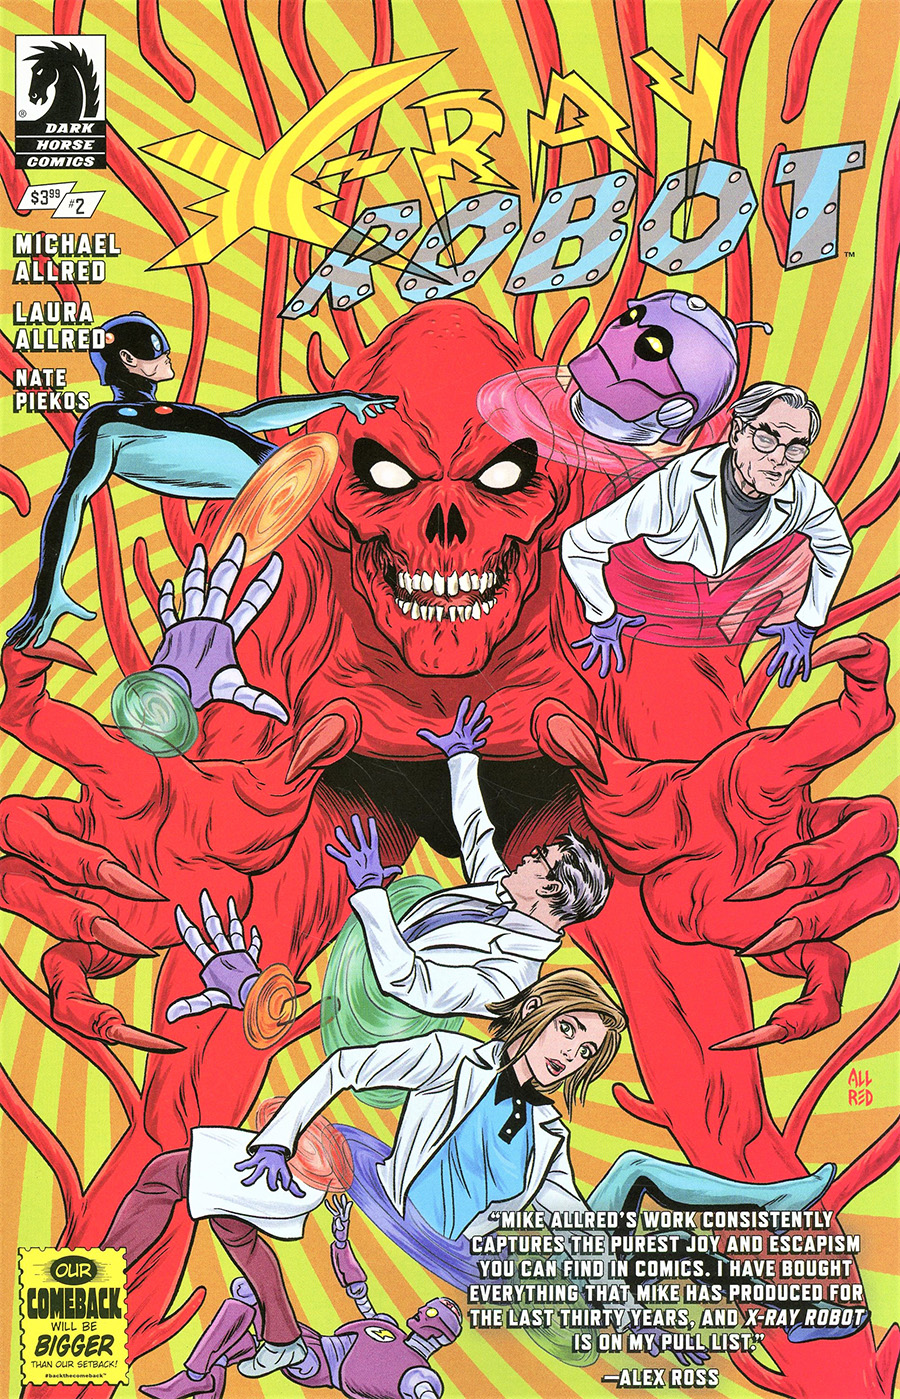 X-Ray Robot #2 Cover A Regular Michael Allred Cover